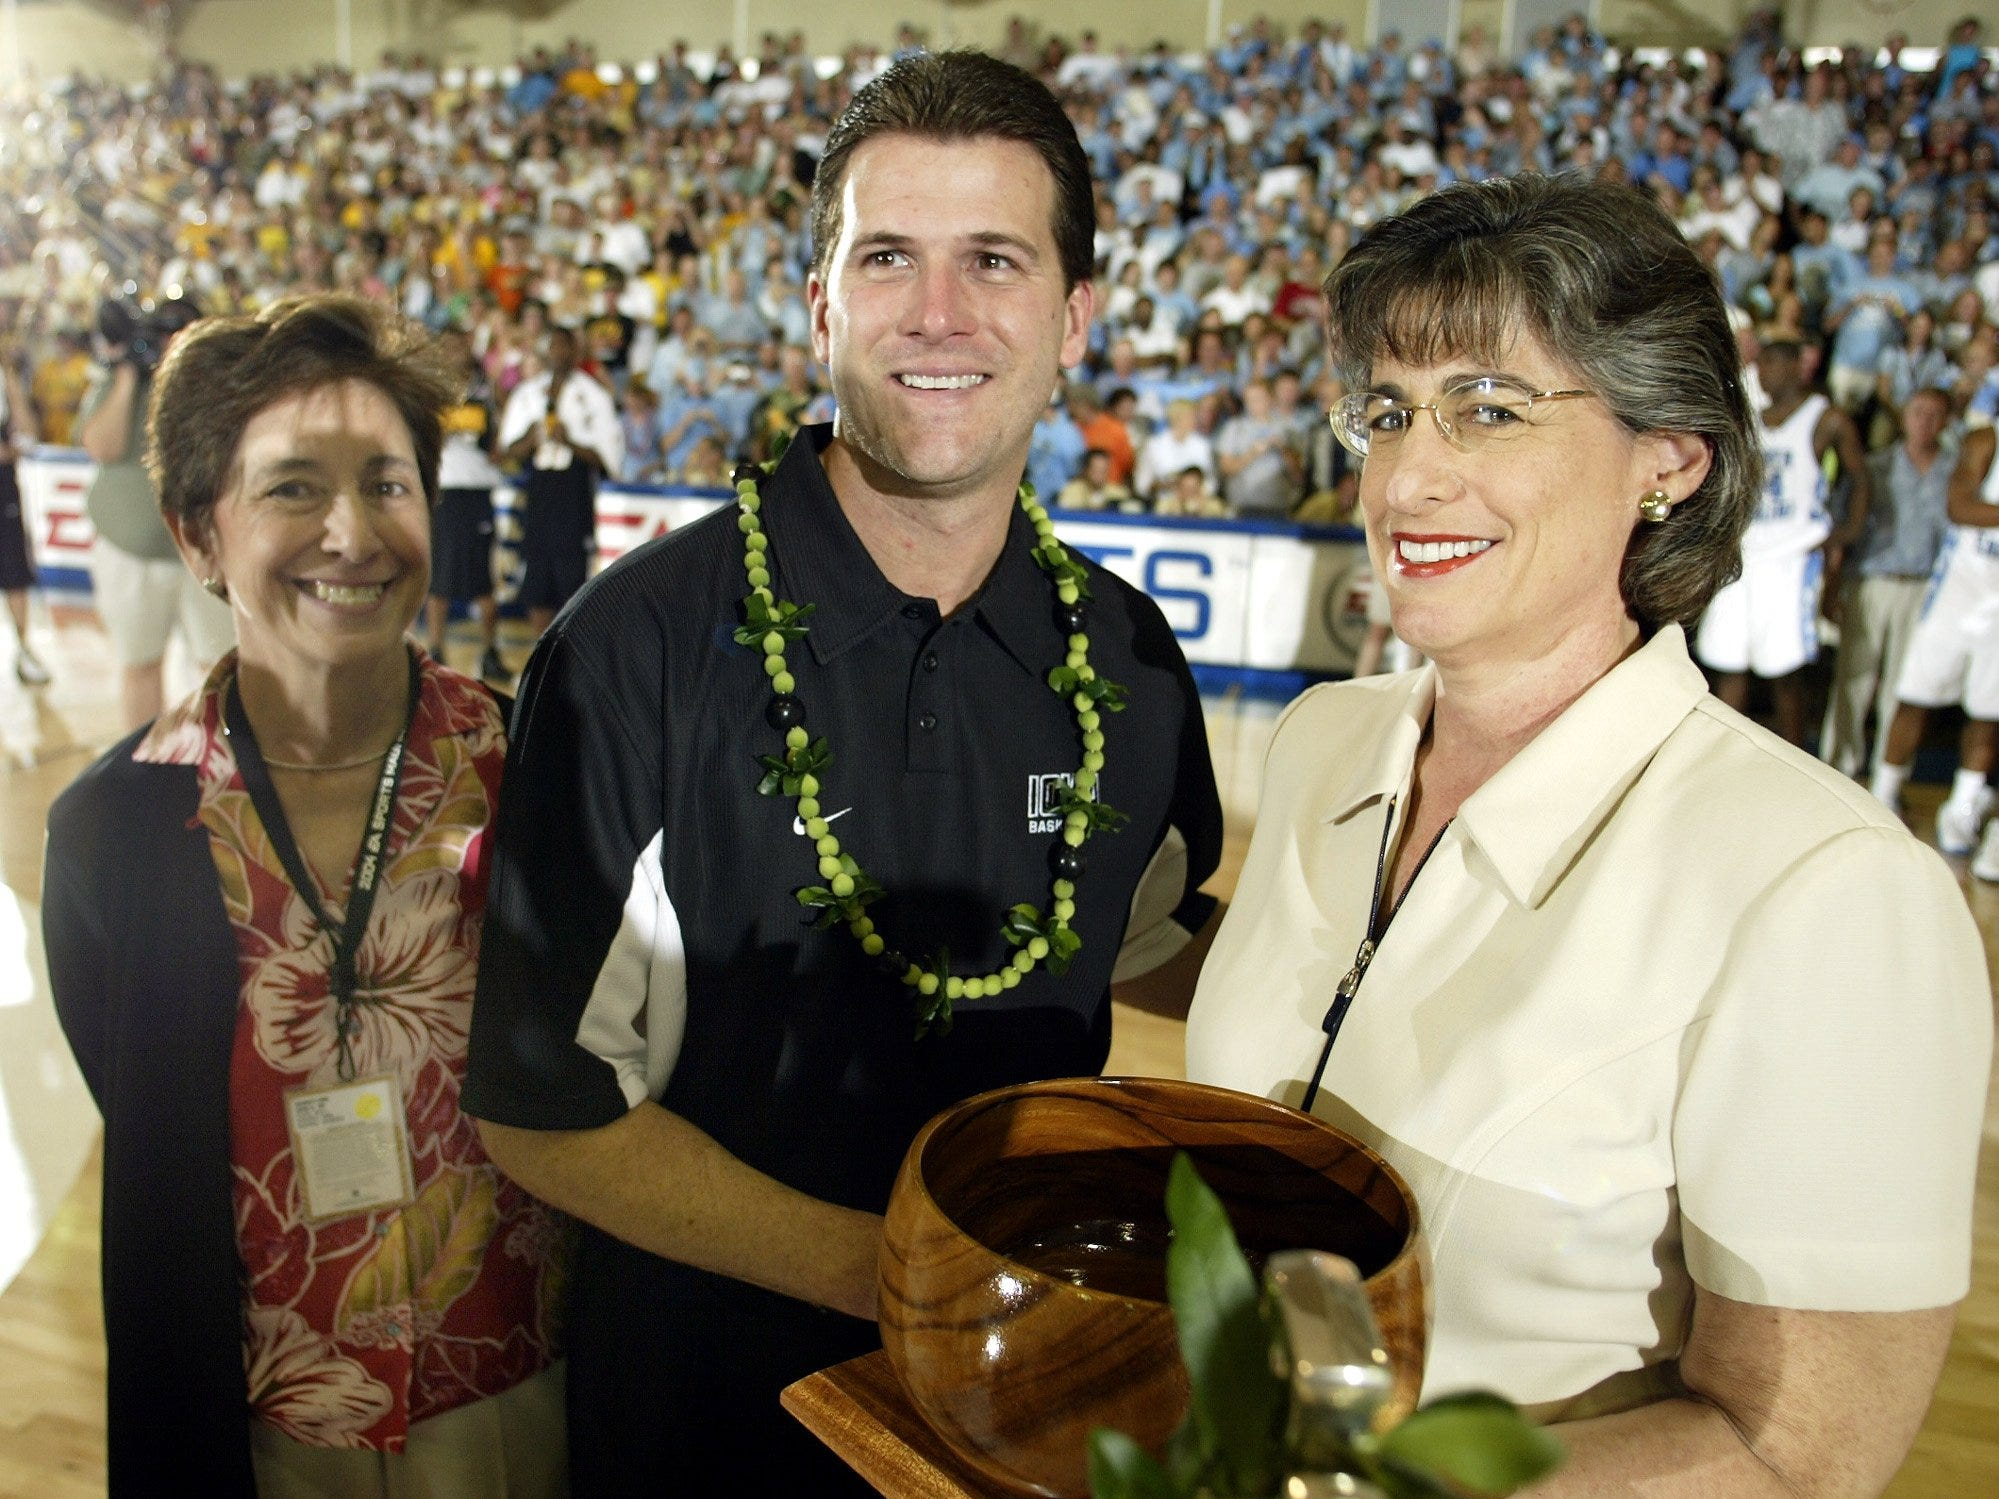 From 2004: Iowa coach Steve Alford receives the runner-up trophy from Hawaii Gov. Linda Lingle, right, after the Hawkeyes lost to North Carolina, 106-92, at the Maui Invitational.